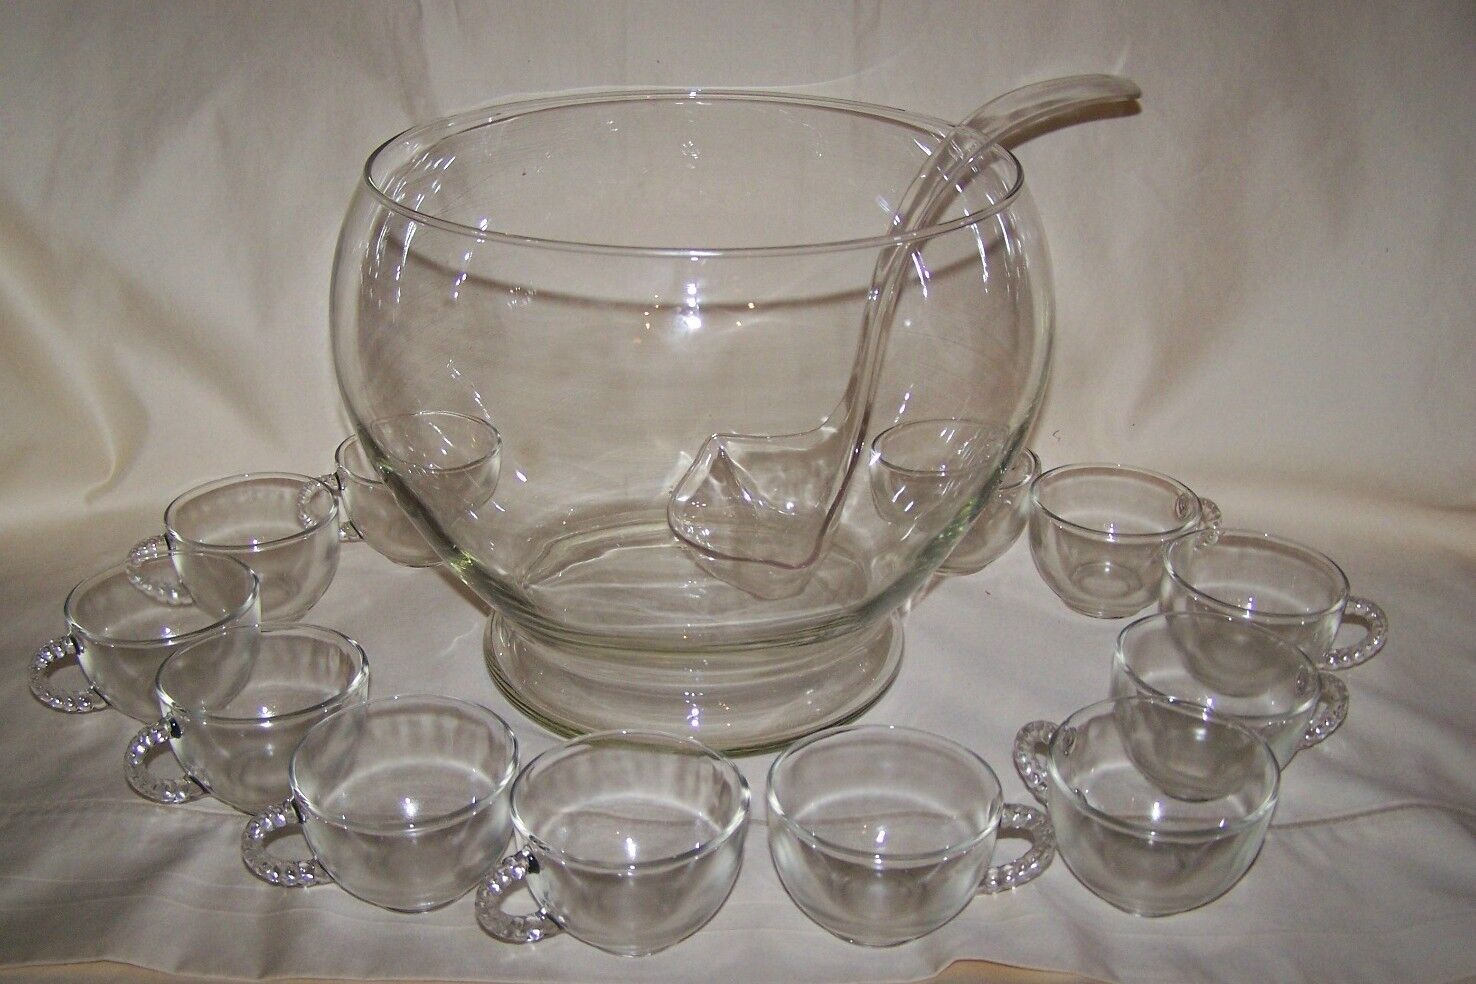 Riekes Crisa Handblown Crystal Punch Bowl 12 Cups Crafted In Mexico W Box